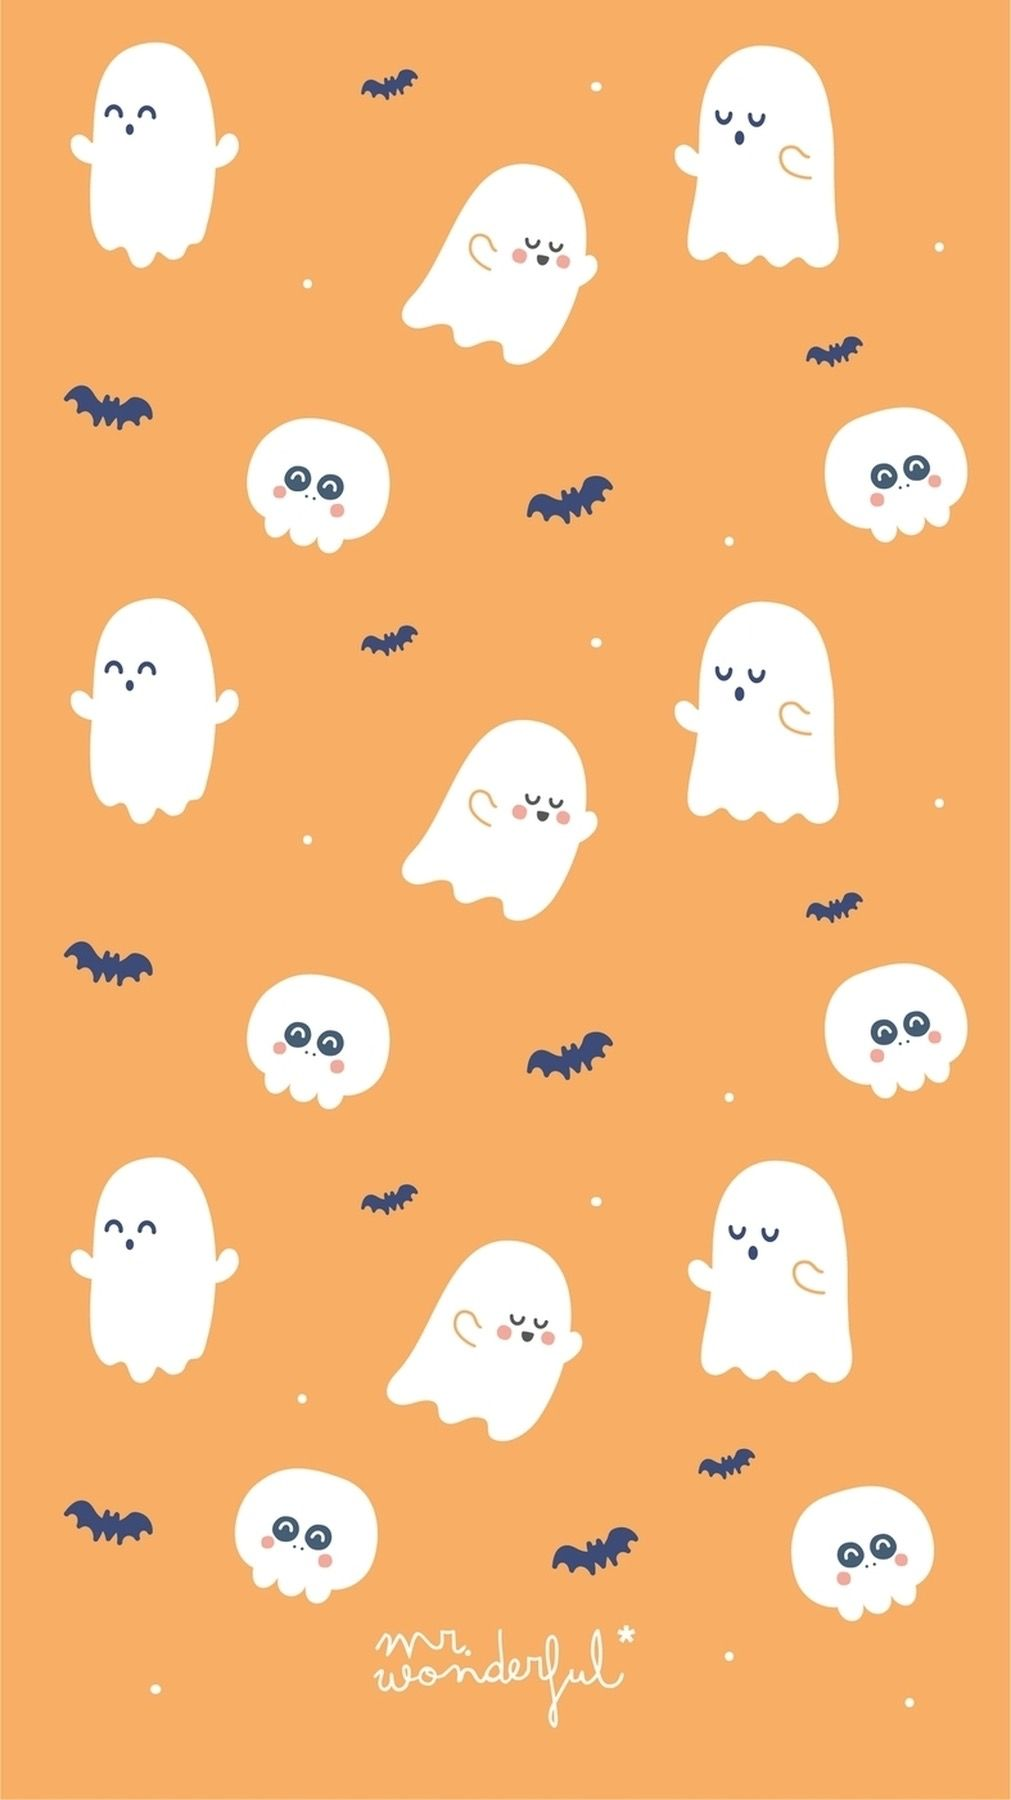 Cute Halloween Wallpaper Android Kolpaper Awesome Free Hd Wallpapers